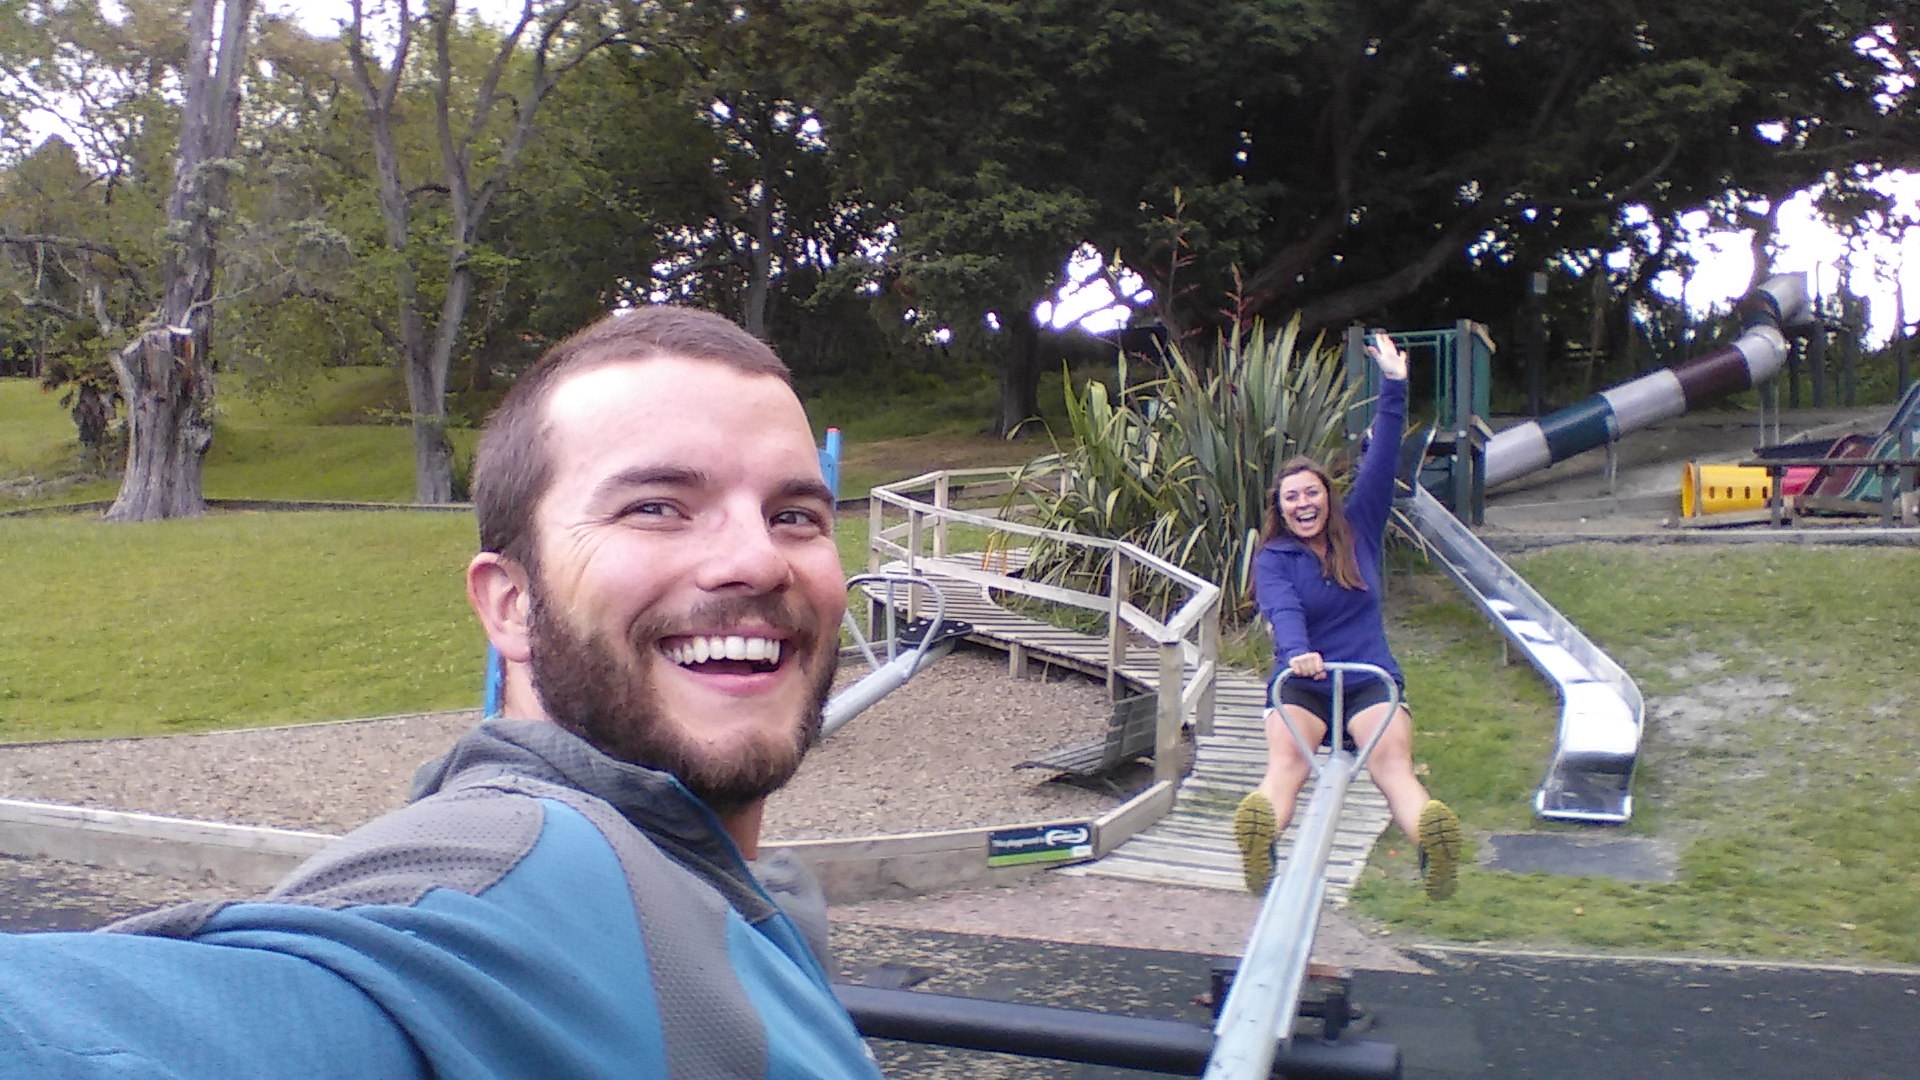 Waiting to check out a camper van in Auckland, and found the joy in the small moment of jumping on a seesaw!